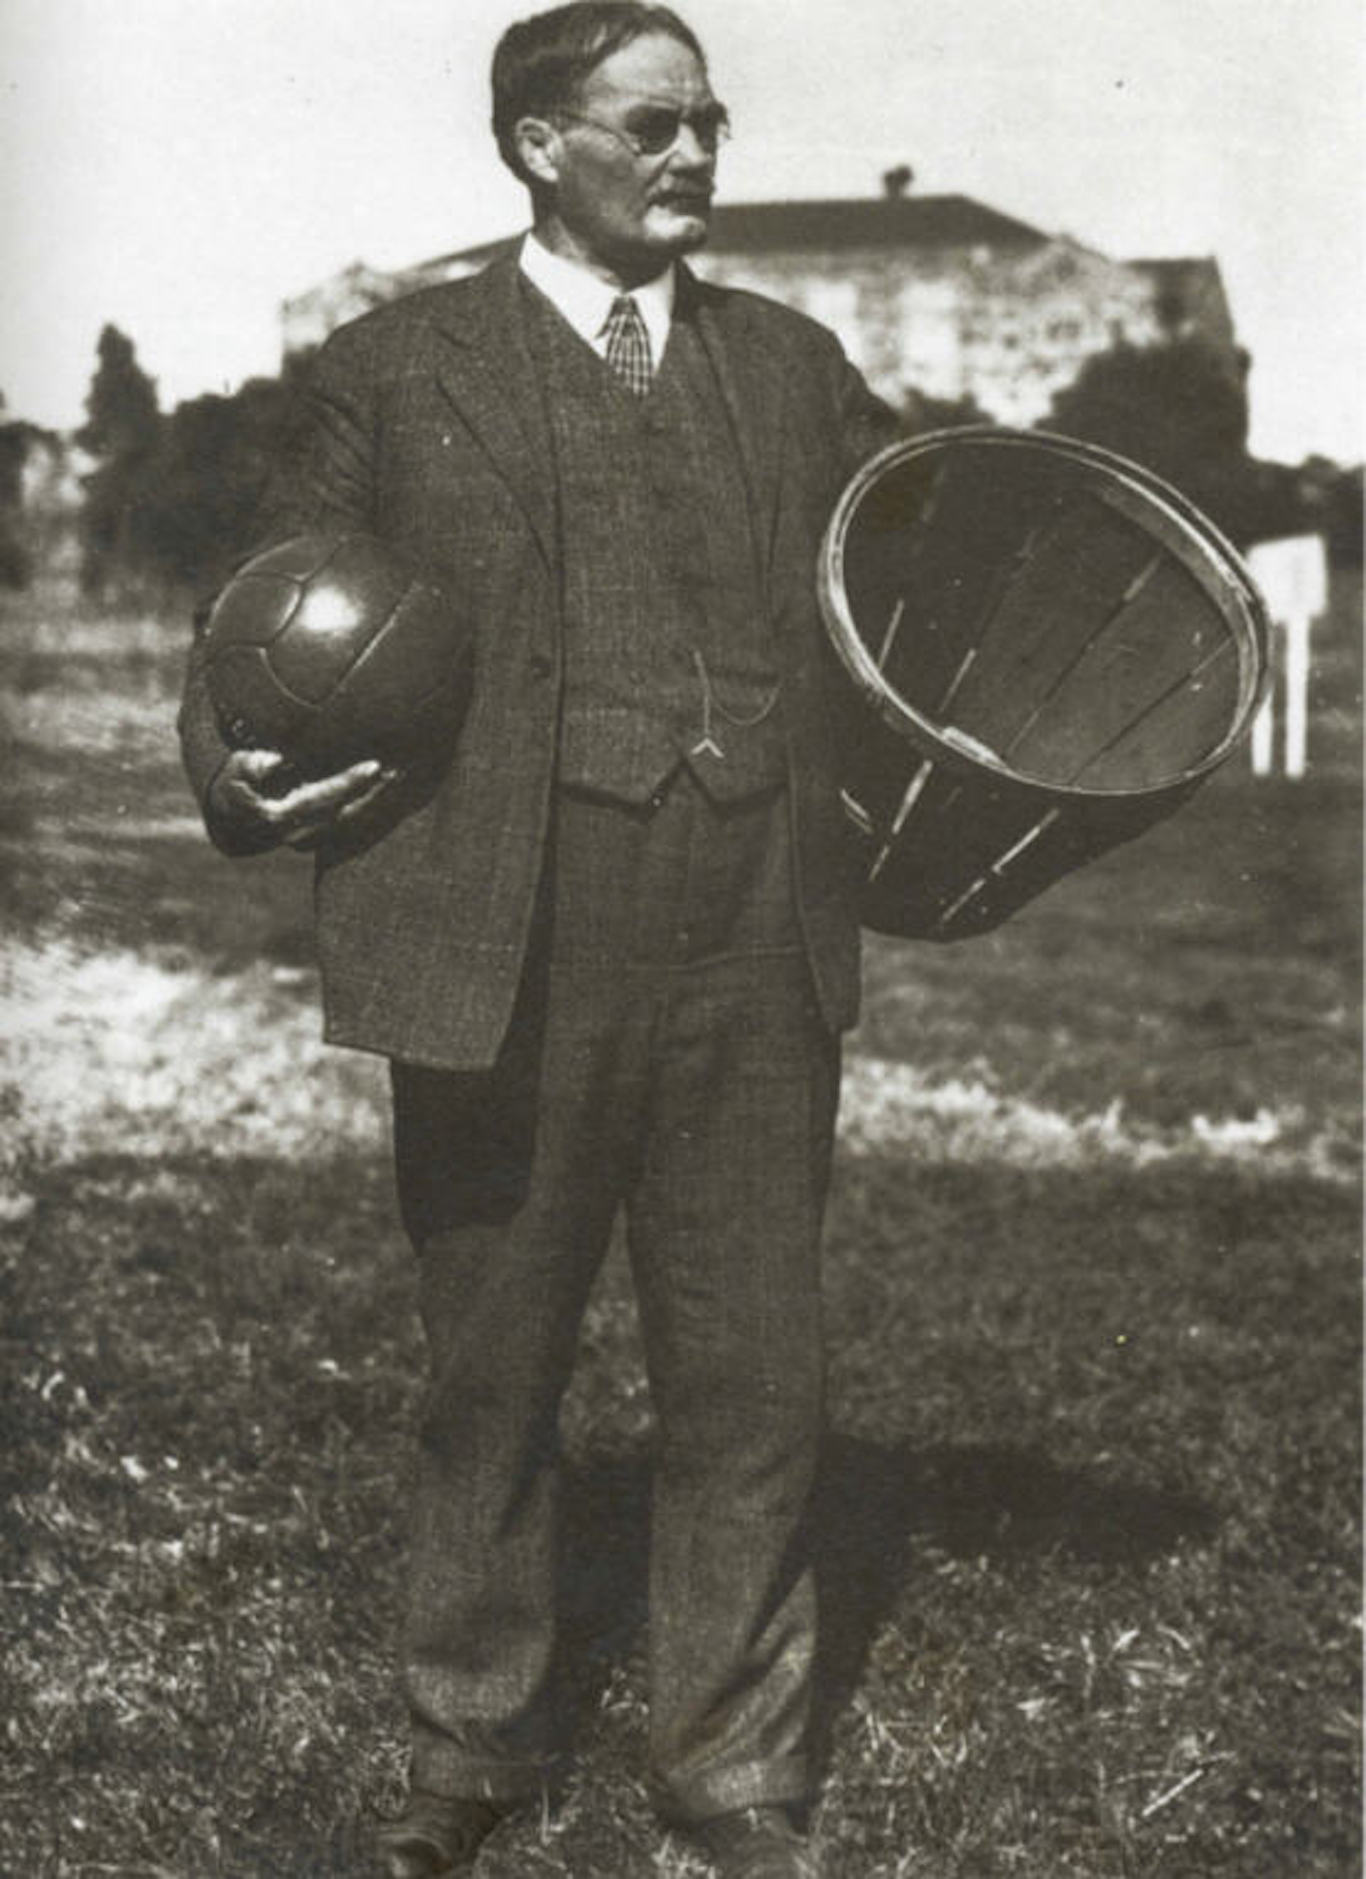 dr james naismith and the invention of the sport of basketball The naismith memorial basketball hall of fame was opened to the piblic in 1968 at springfield, mass, a tribute that forever makes james naismith synonymous with basketball the original 13 rules of basketball (written by james naismith, dec 21, 1891) 1.